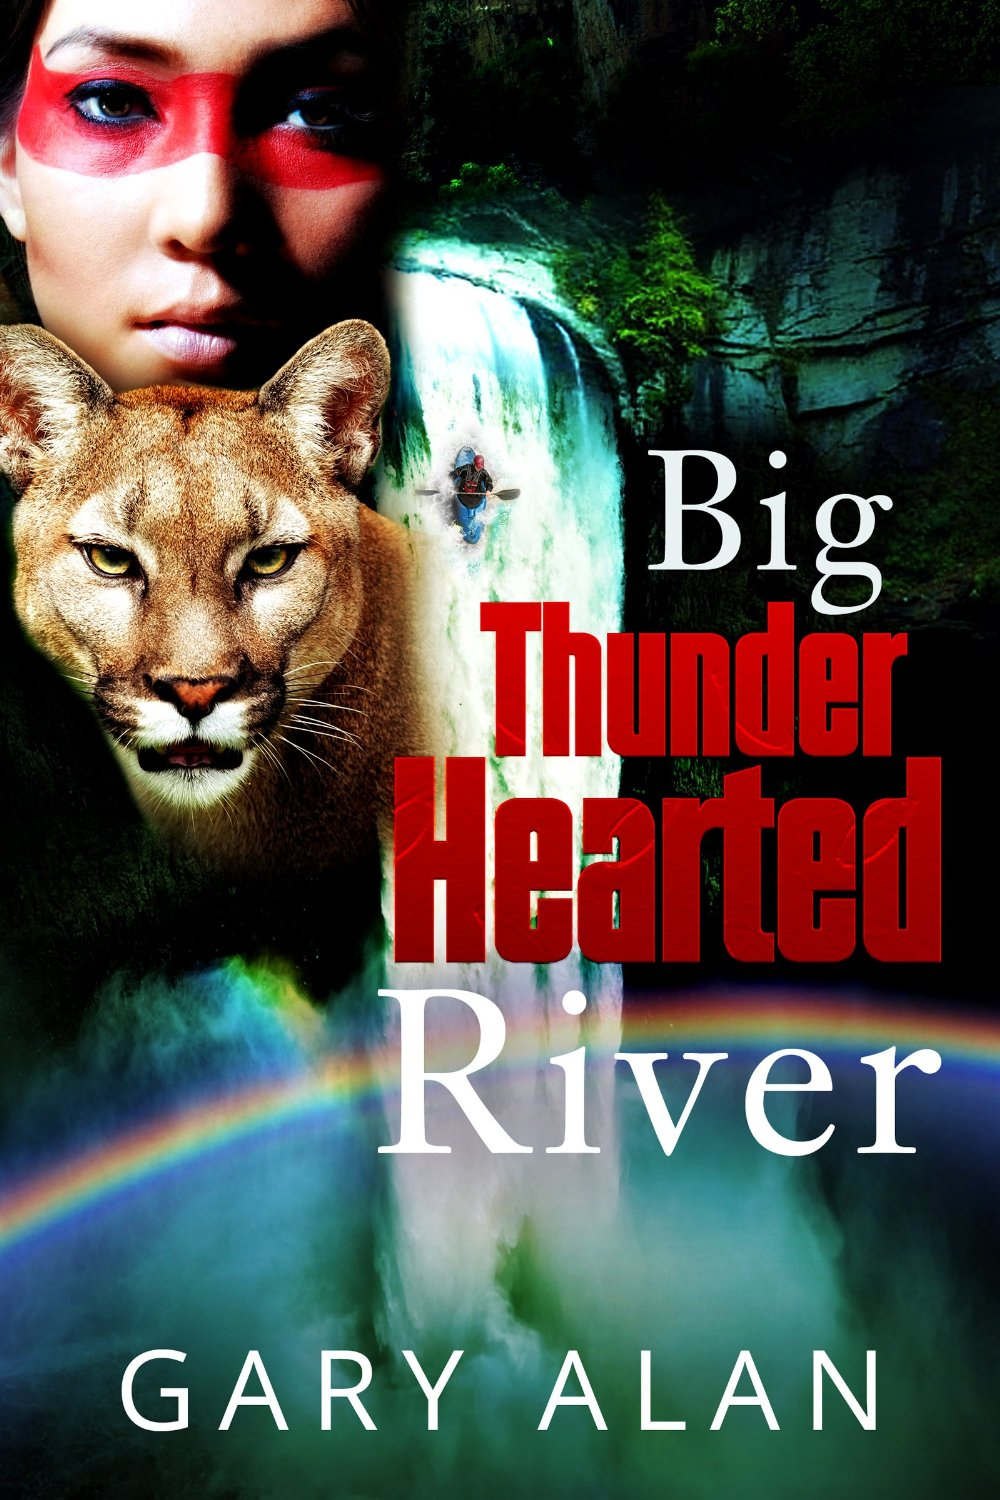 Big Thunder-Hearted River by Gary Alan